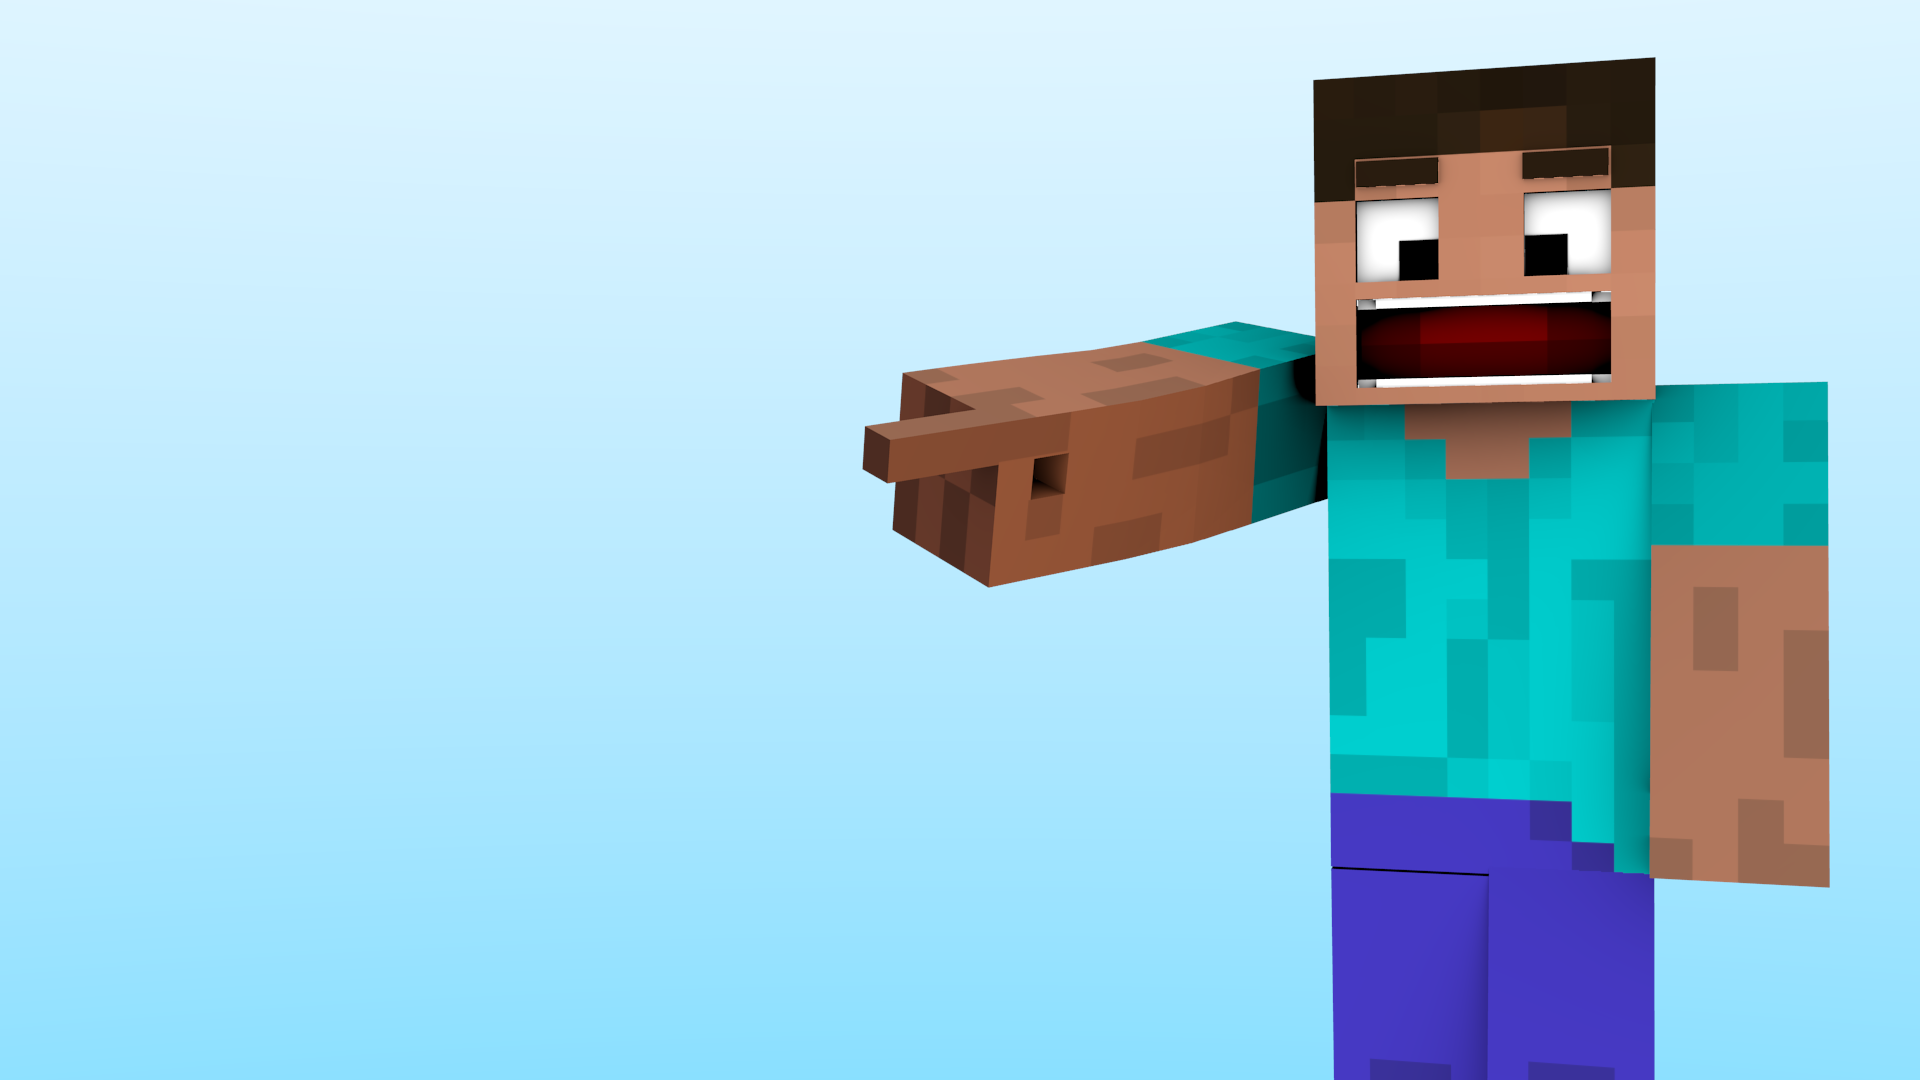 Falling Weed Wallpaper Minecraft Blender Rig Steve With Full Facial Expressions